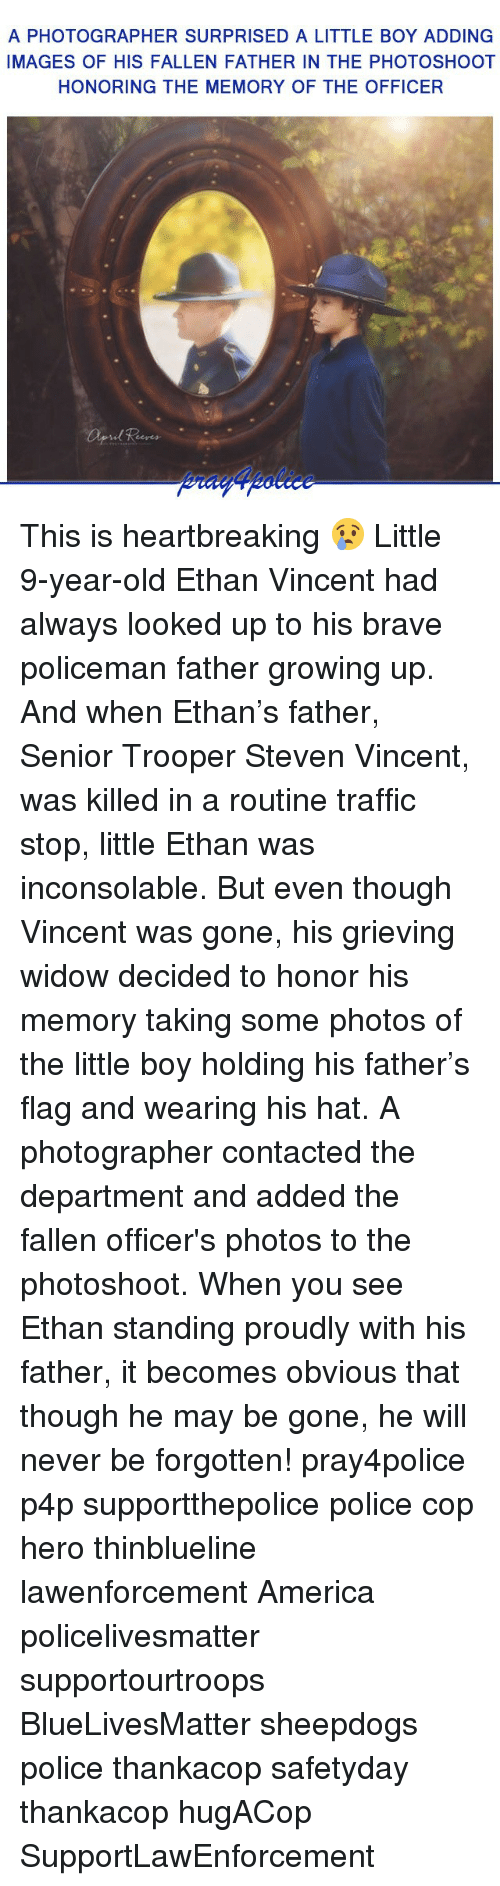 America, Growing Up, and Memes: A PHOTOGRAPHER SURPRISED A LITTLE BOY ADDING  IMAGES OF HIS FALLEN FATHER IN THE PHOTOSHOOT  HONORING THE MEMORY OF THE OFFICER This is heartbreaking 😢 Little 9-year-old Ethan Vincent had always looked up to his brave policeman father growing up. And when Ethan's father, Senior Trooper Steven Vincent, was killed in a routine traffic stop, little Ethan was inconsolable. But even though Vincent was gone, his grieving widow decided to honor his memory taking some photos of the little boy holding his father's flag and wearing his hat. A photographer contacted the department and added the fallen officer's photos to the photoshoot. When you see Ethan standing proudly with his father, it becomes obvious that though he may be gone, he will never be forgotten! pray4police p4p supportthepolice police cop hero thinblueline lawenforcement America policelivesmatter supportourtroops BlueLivesMatter sheepdogs police thankacop safetyday thankacop hugACop SupportLawEnforcement